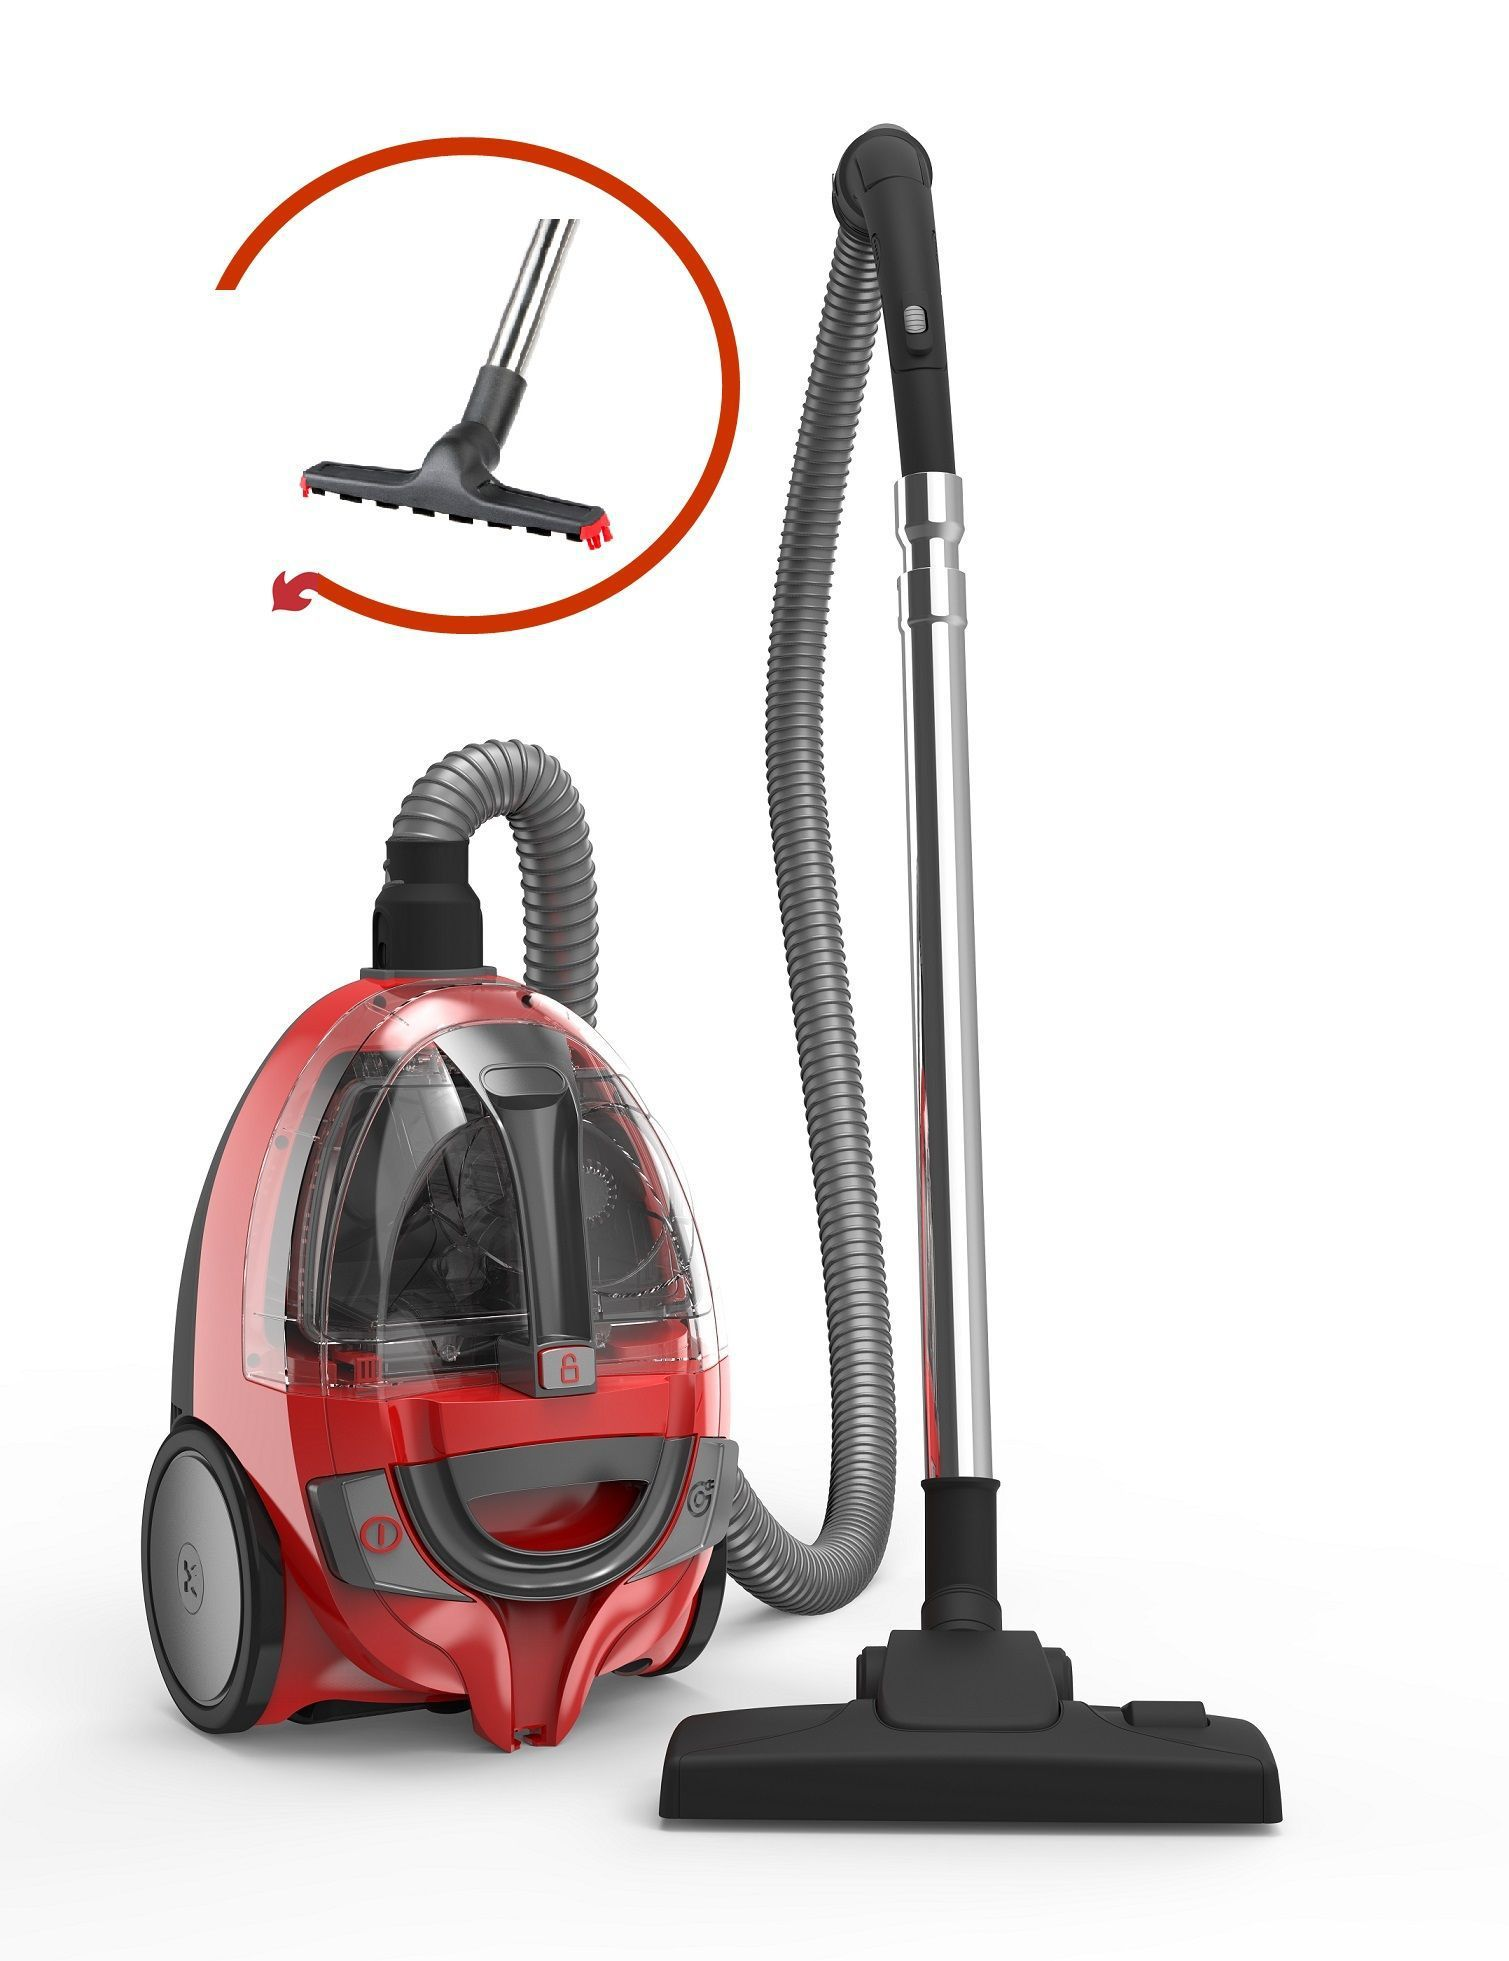 dirt devil dd2630 1 aspirateur tra neau sans sac bibox 800w 80 db a rouge achat. Black Bedroom Furniture Sets. Home Design Ideas